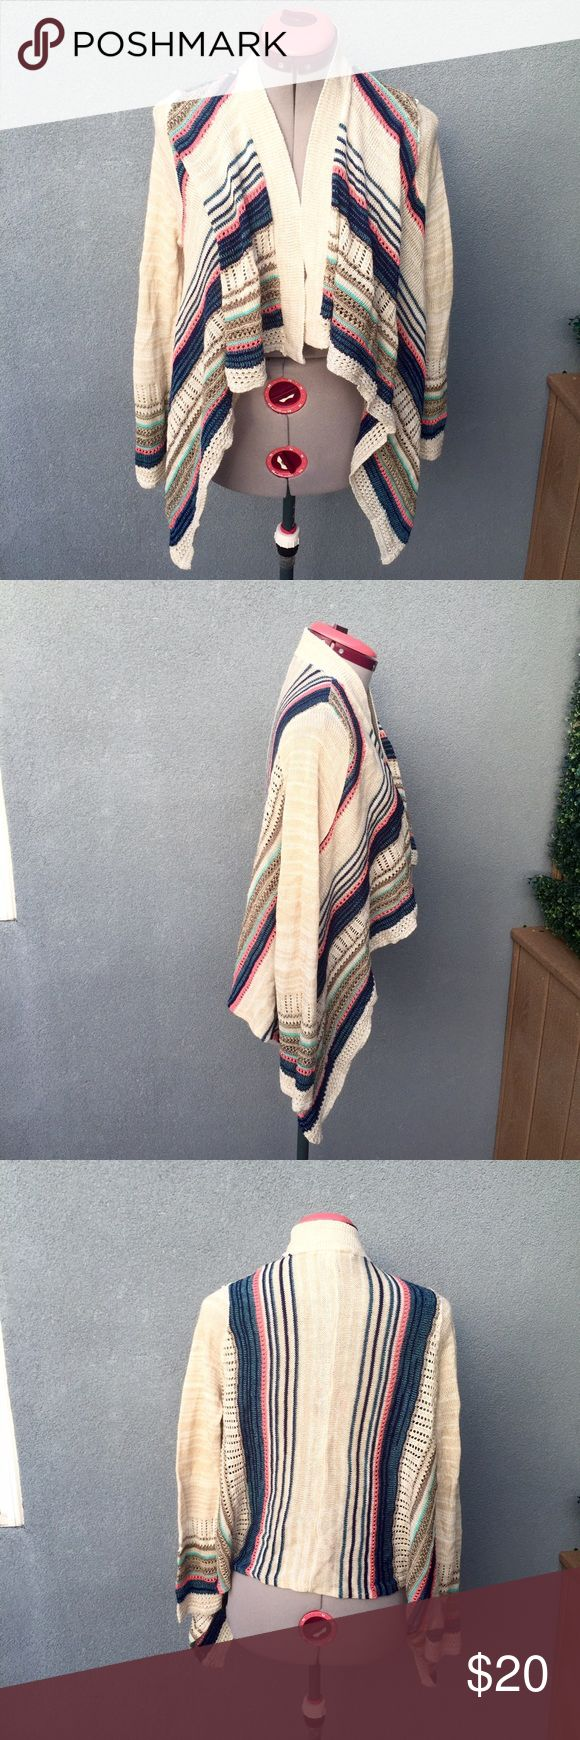 Colorful Striped Waterfall Cardigan Colorful Striped Waterfall Cardigan | 100% Acrylic Say What? Sweaters Cardigans